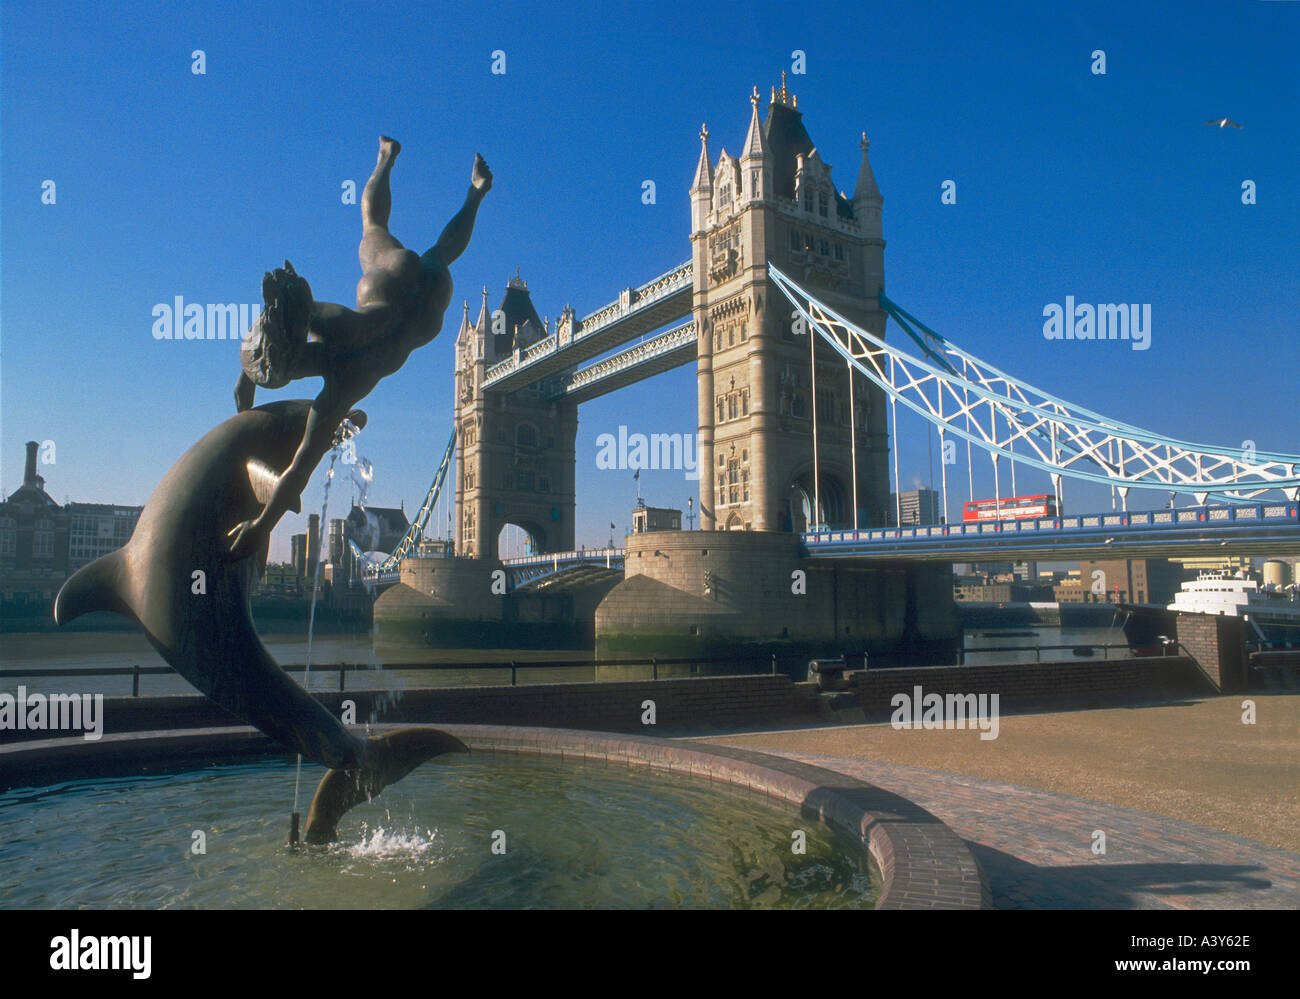 Tower Bridge and statue over the Thames in London Stock Photo